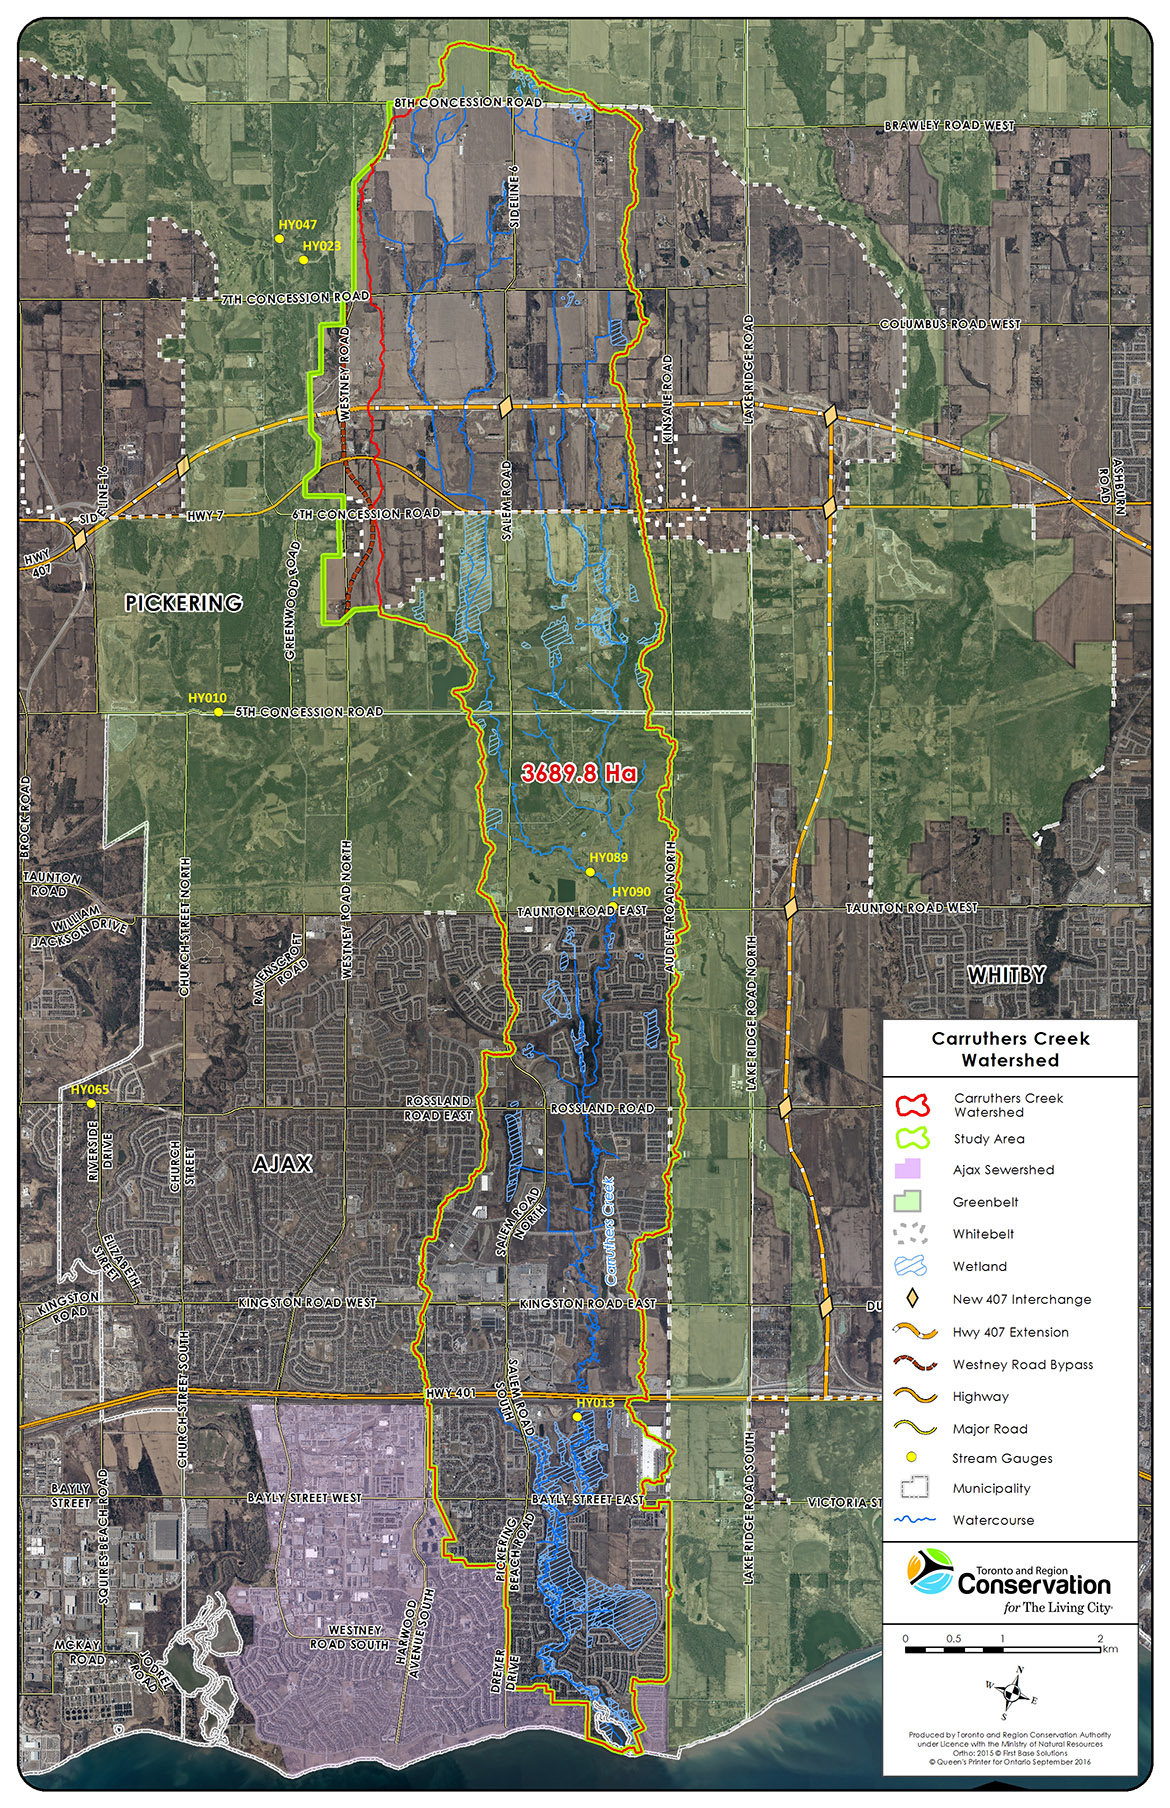 Carruthers Creek watershed study area map